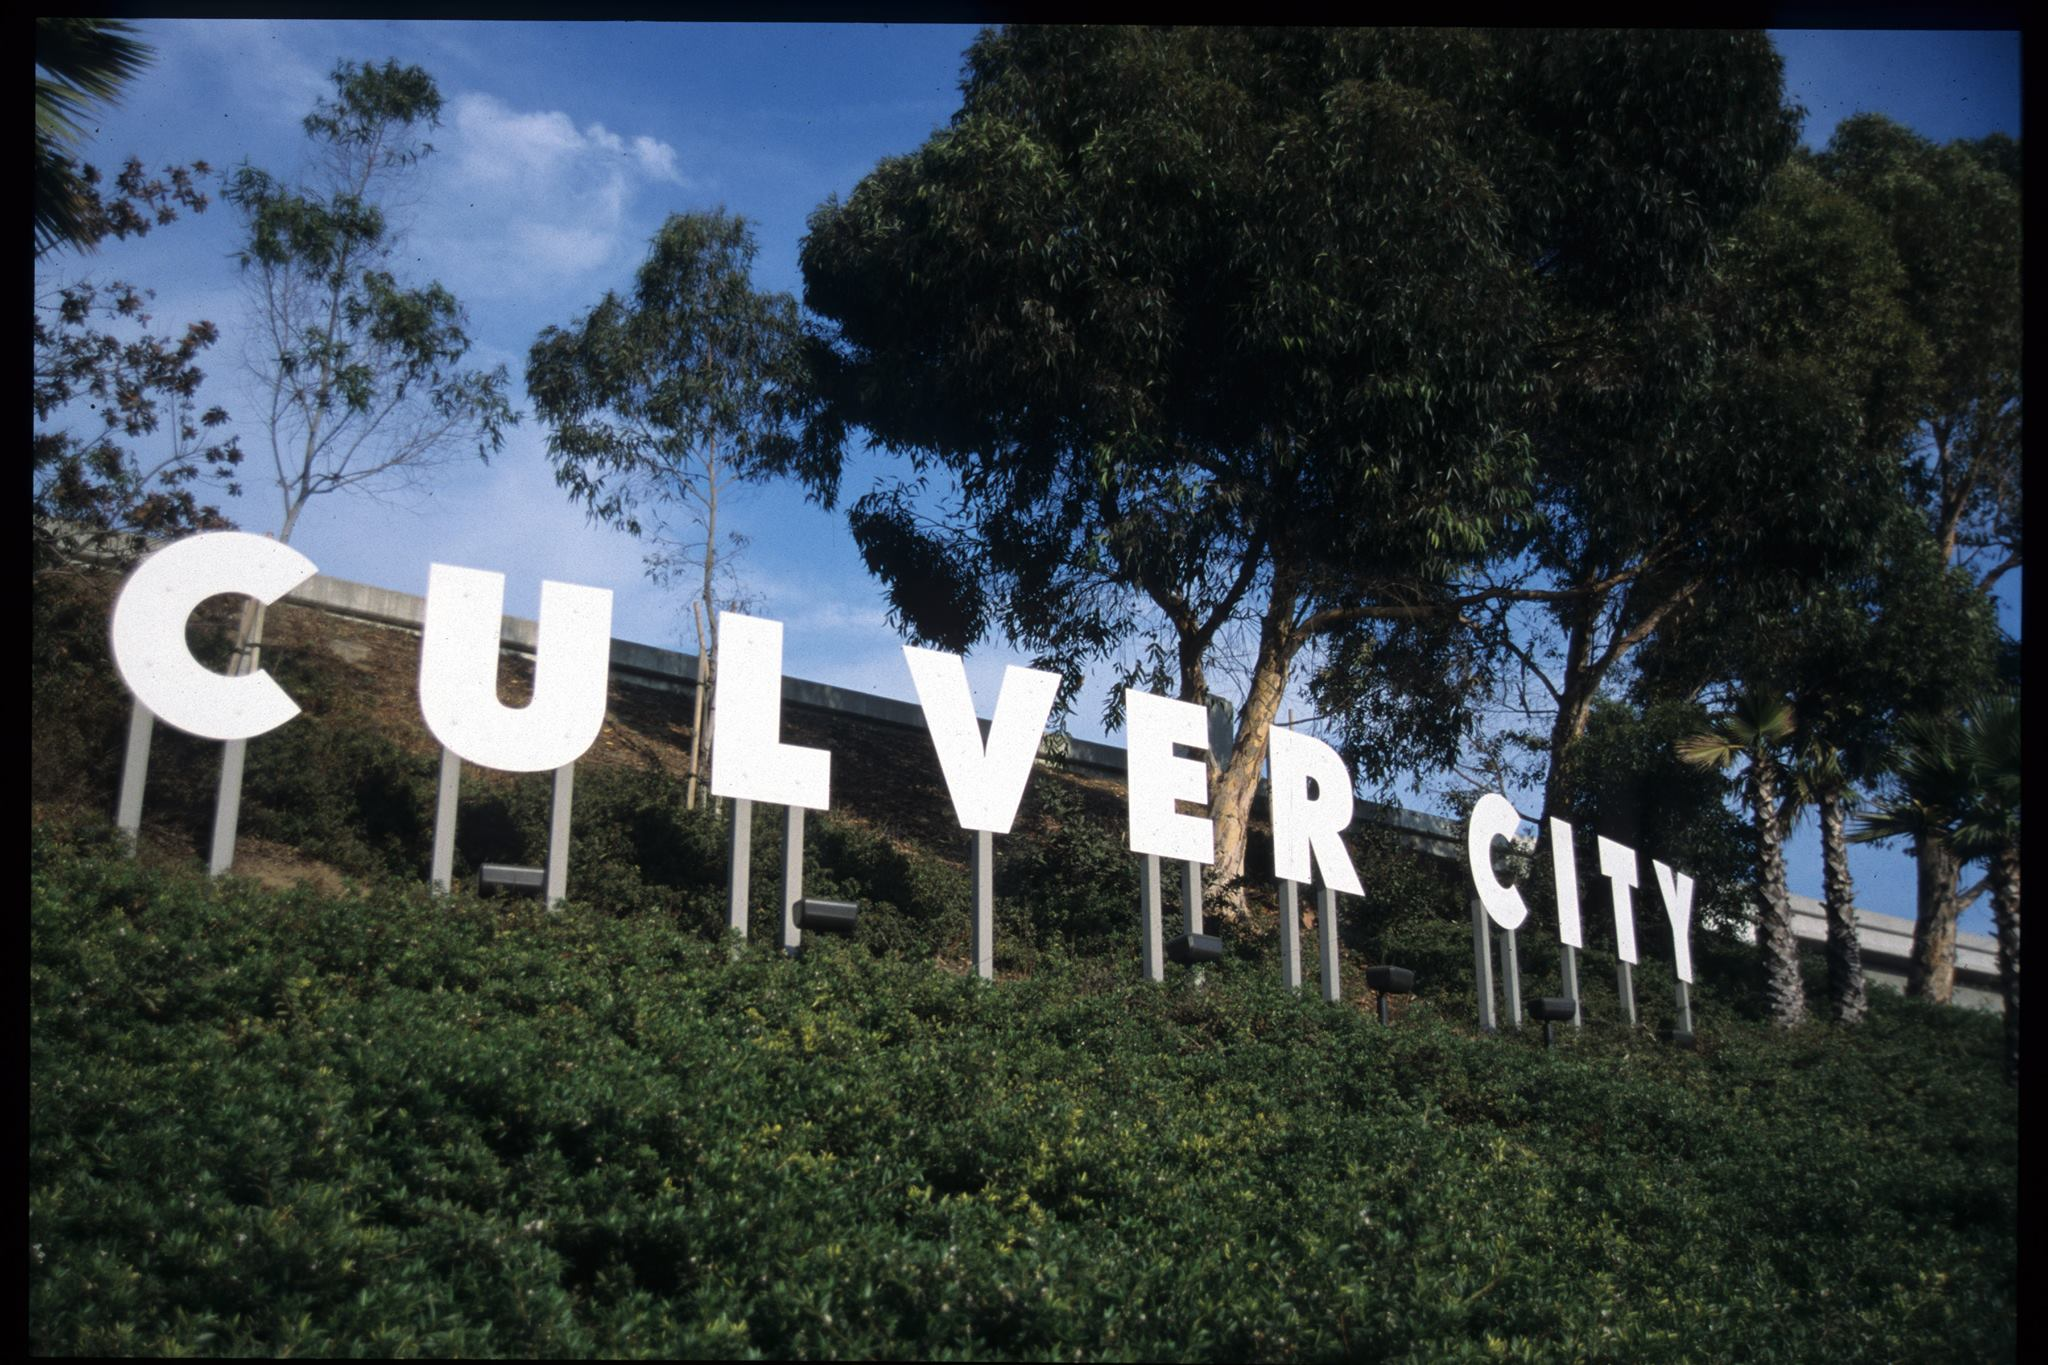 the culver city city council meeting essay Make these official city meetings so all council members can attend without violating the brown act (open meeting requirements) in addition to the non-discriminatory policy of the culver city police department which address race and ethnicity we should have policies that explicitly forbids discrimination in terms of immigration status.